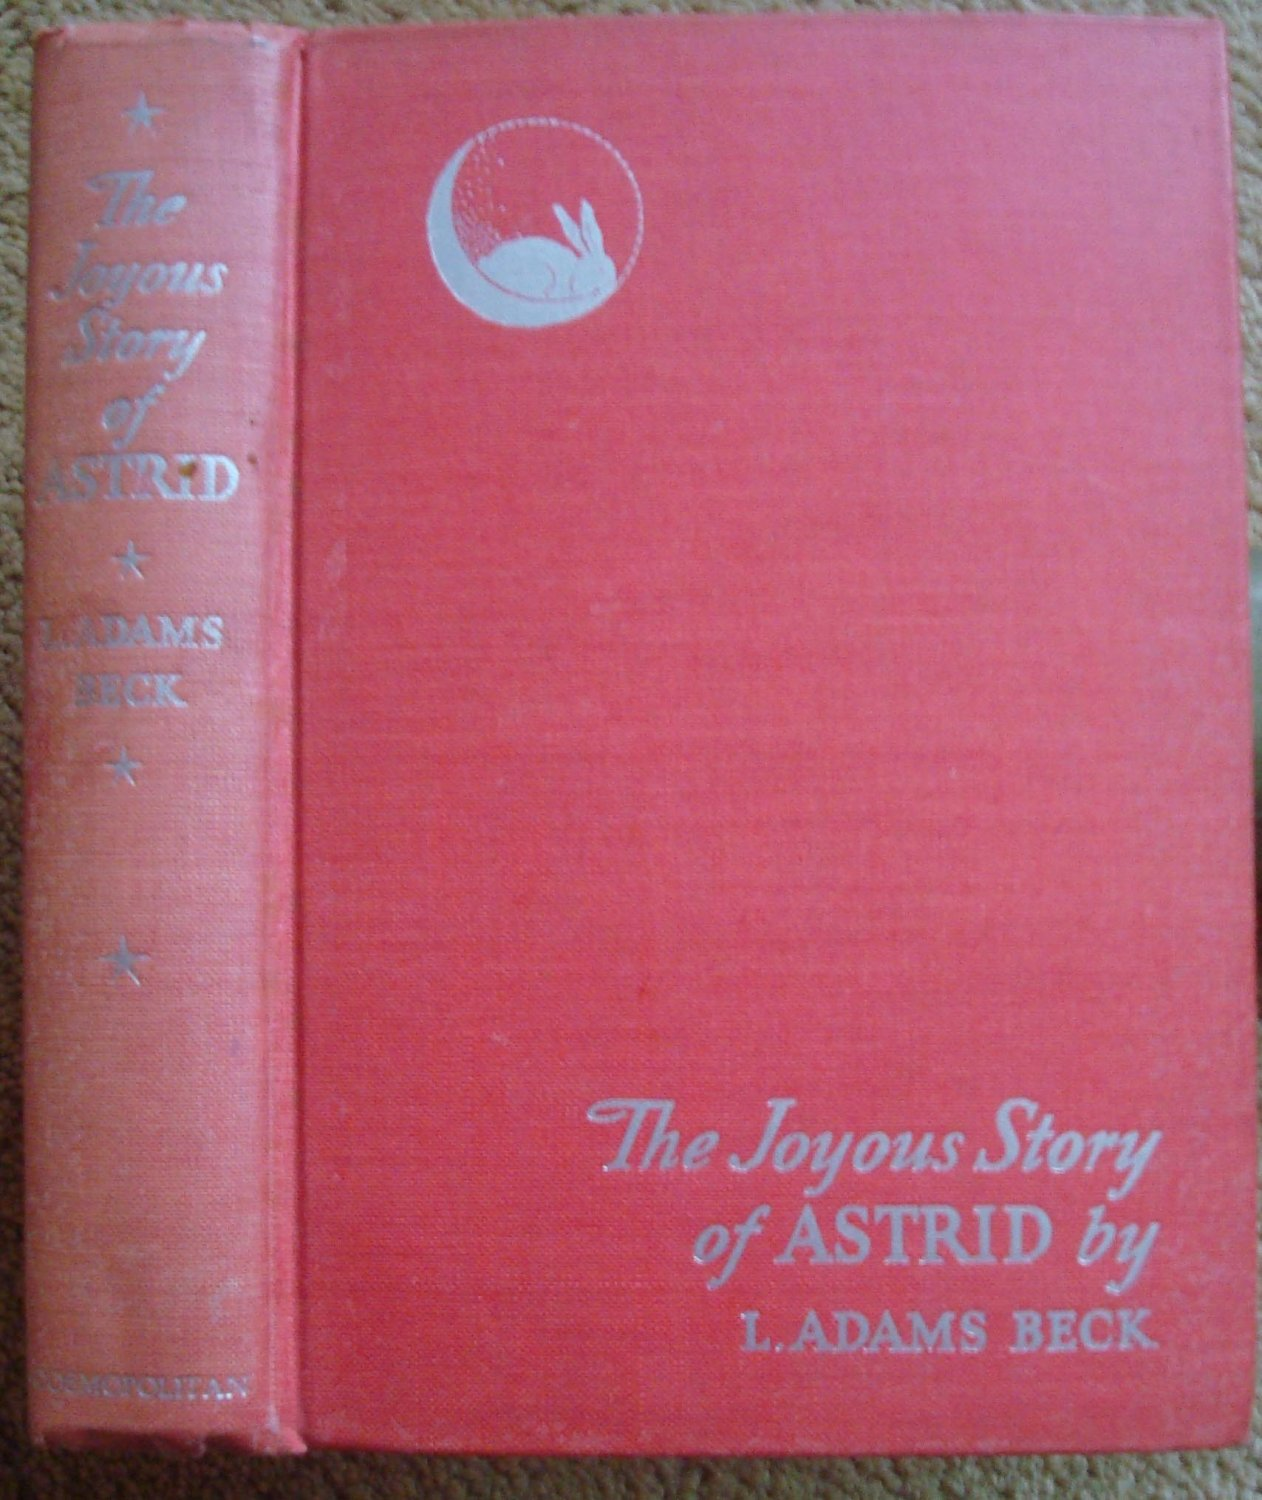 The Joyous Story of Astrid